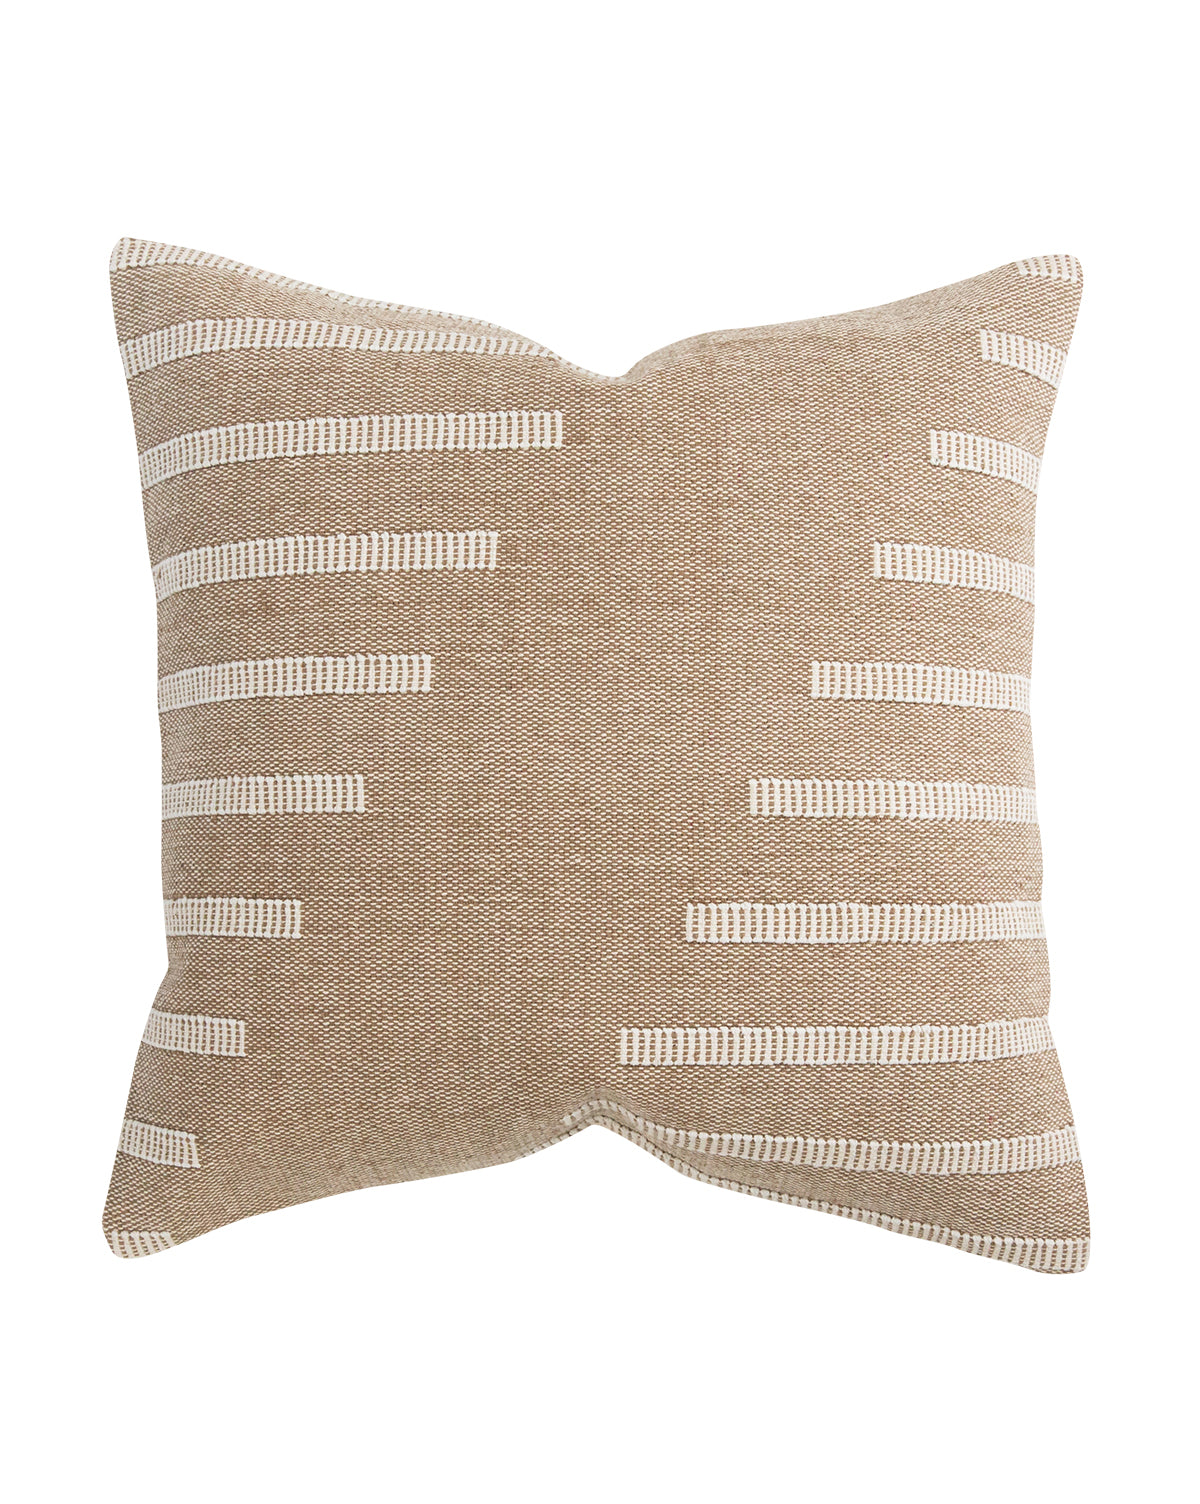 Presley Woven Pillow Cover